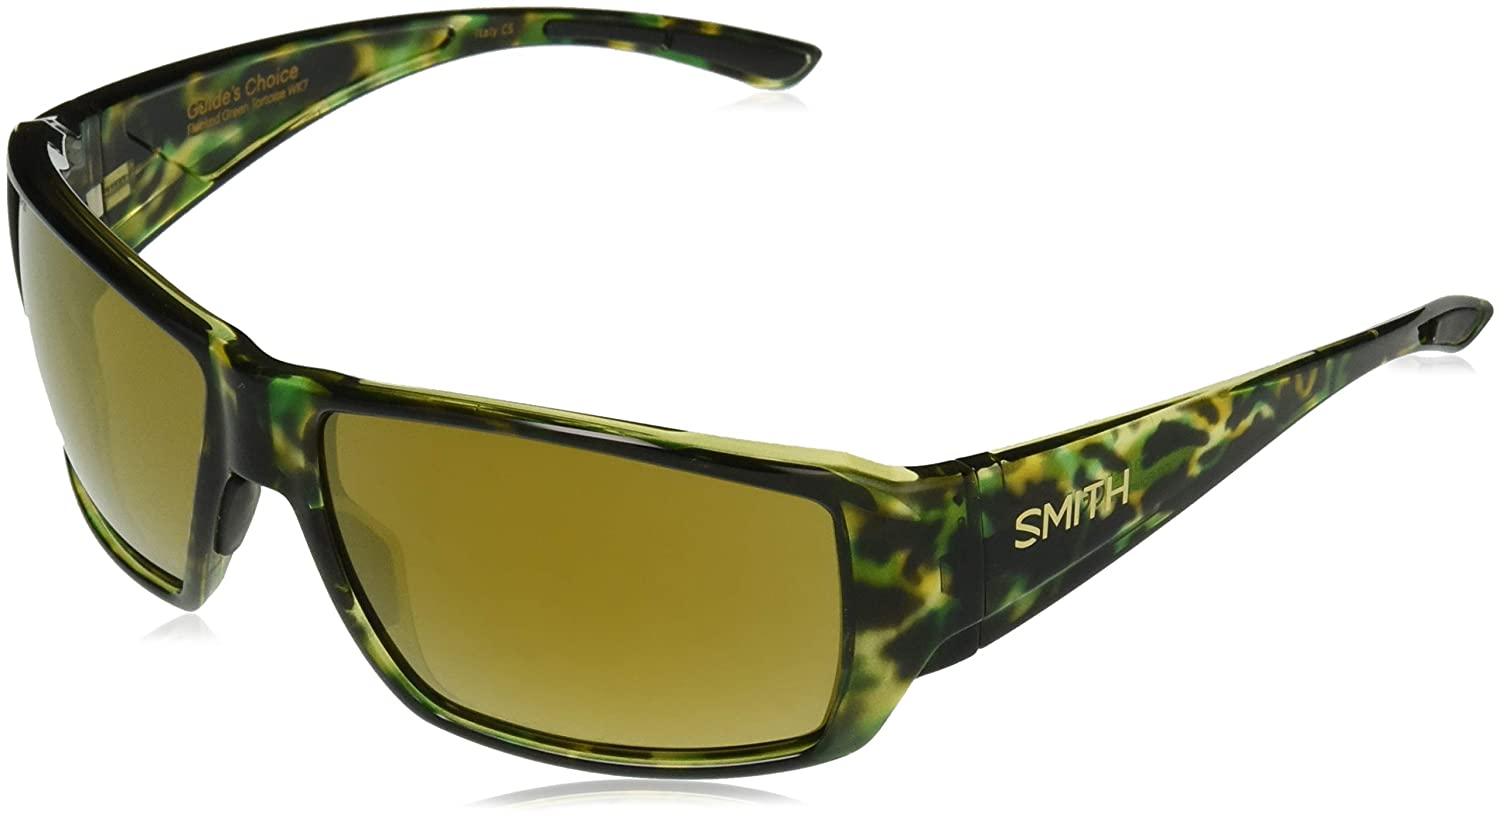 3bde6f99cb9 Amazon.com   Smith Guides Choice Chromapop Polarized Sunglasses ...